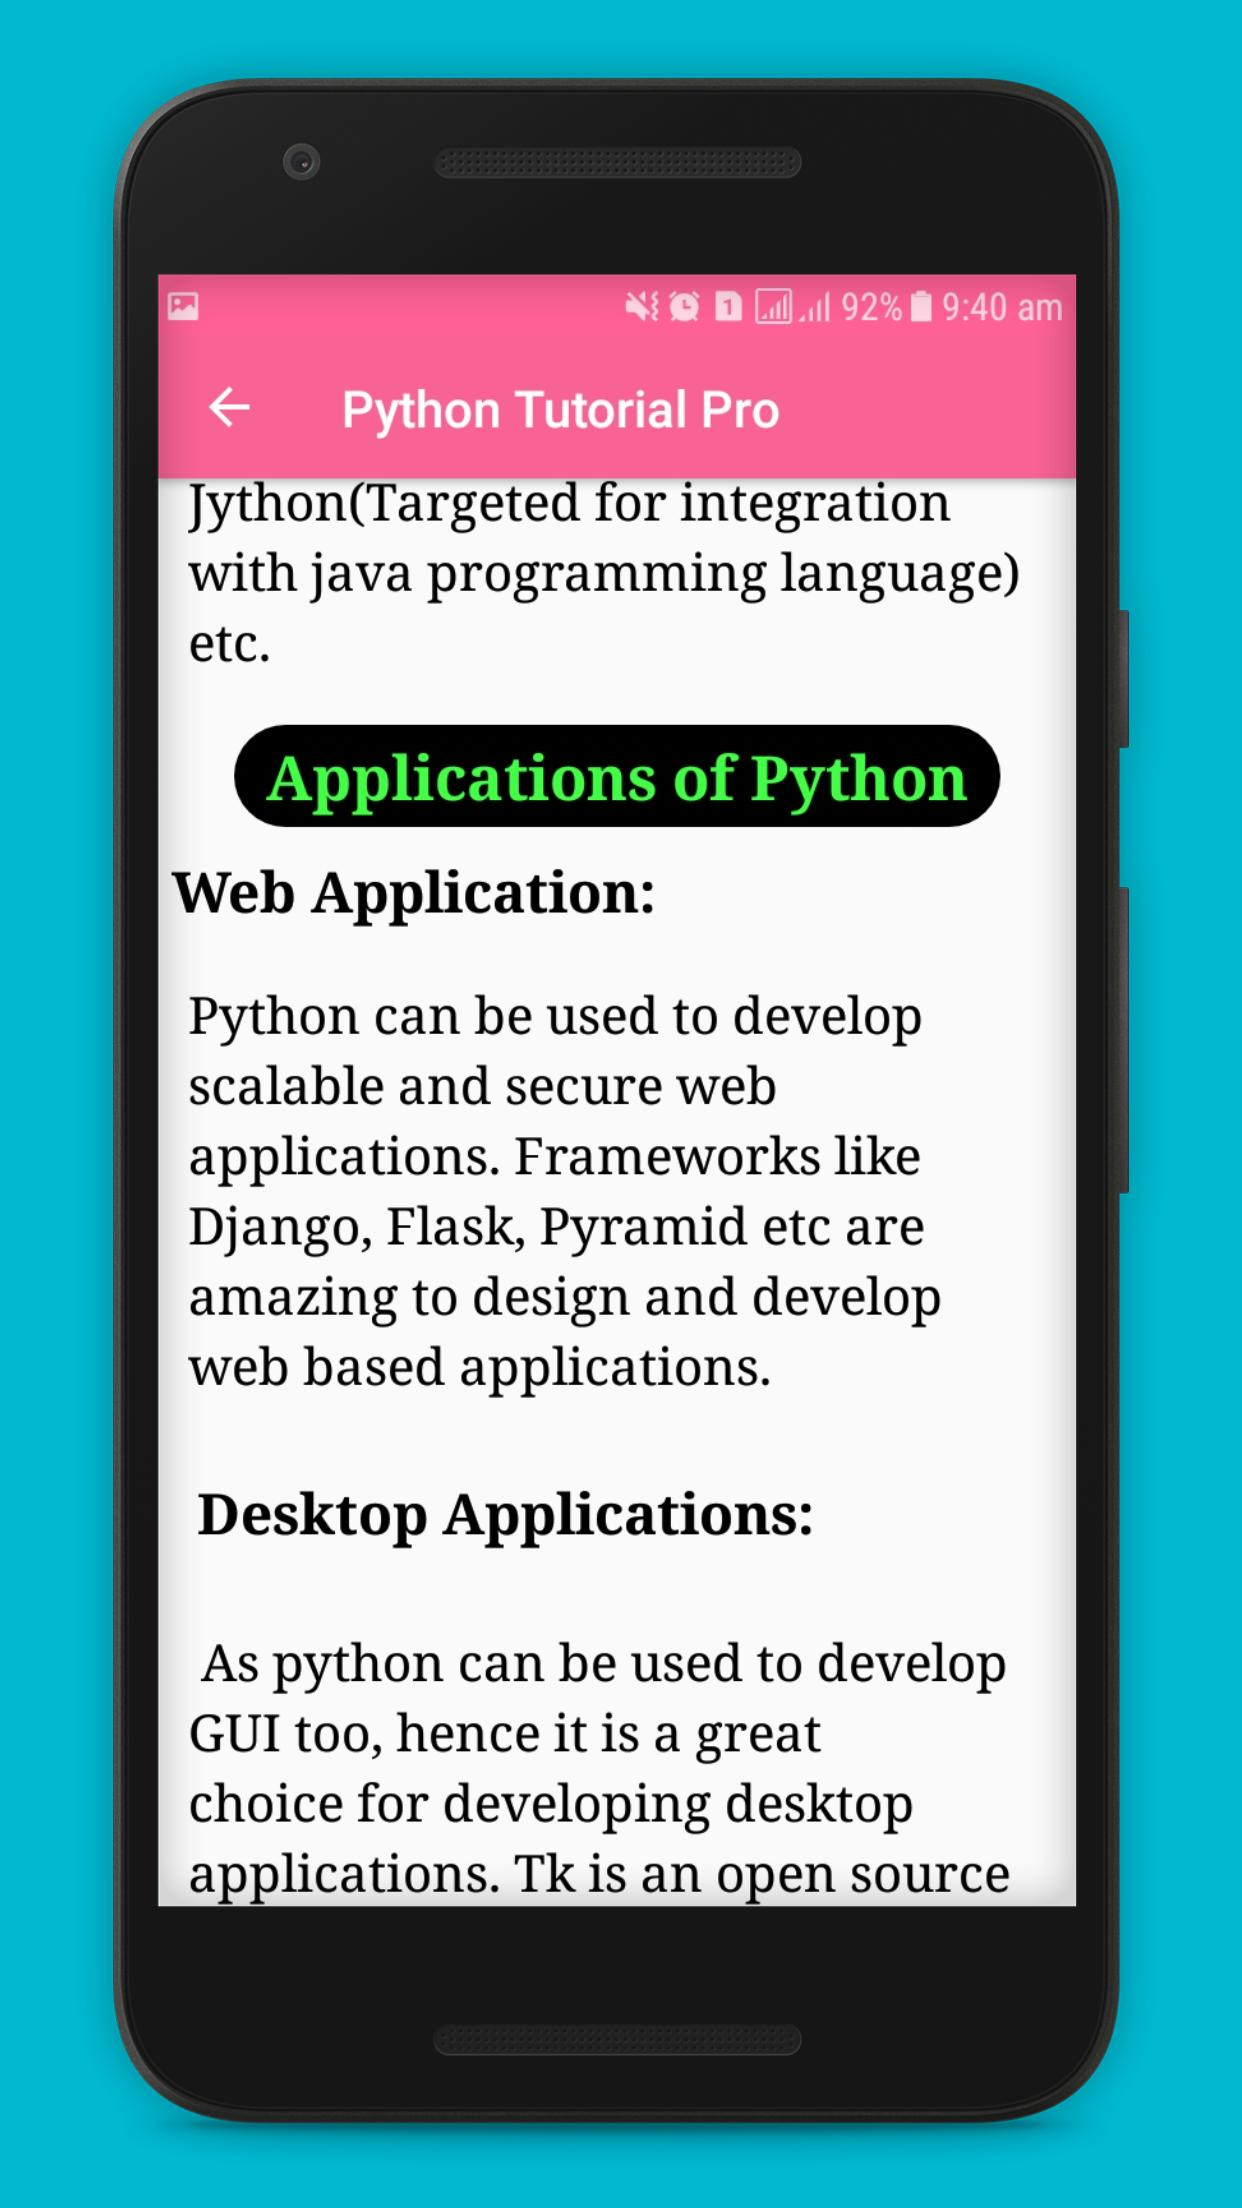 How To Open A Desktop Application Using Python